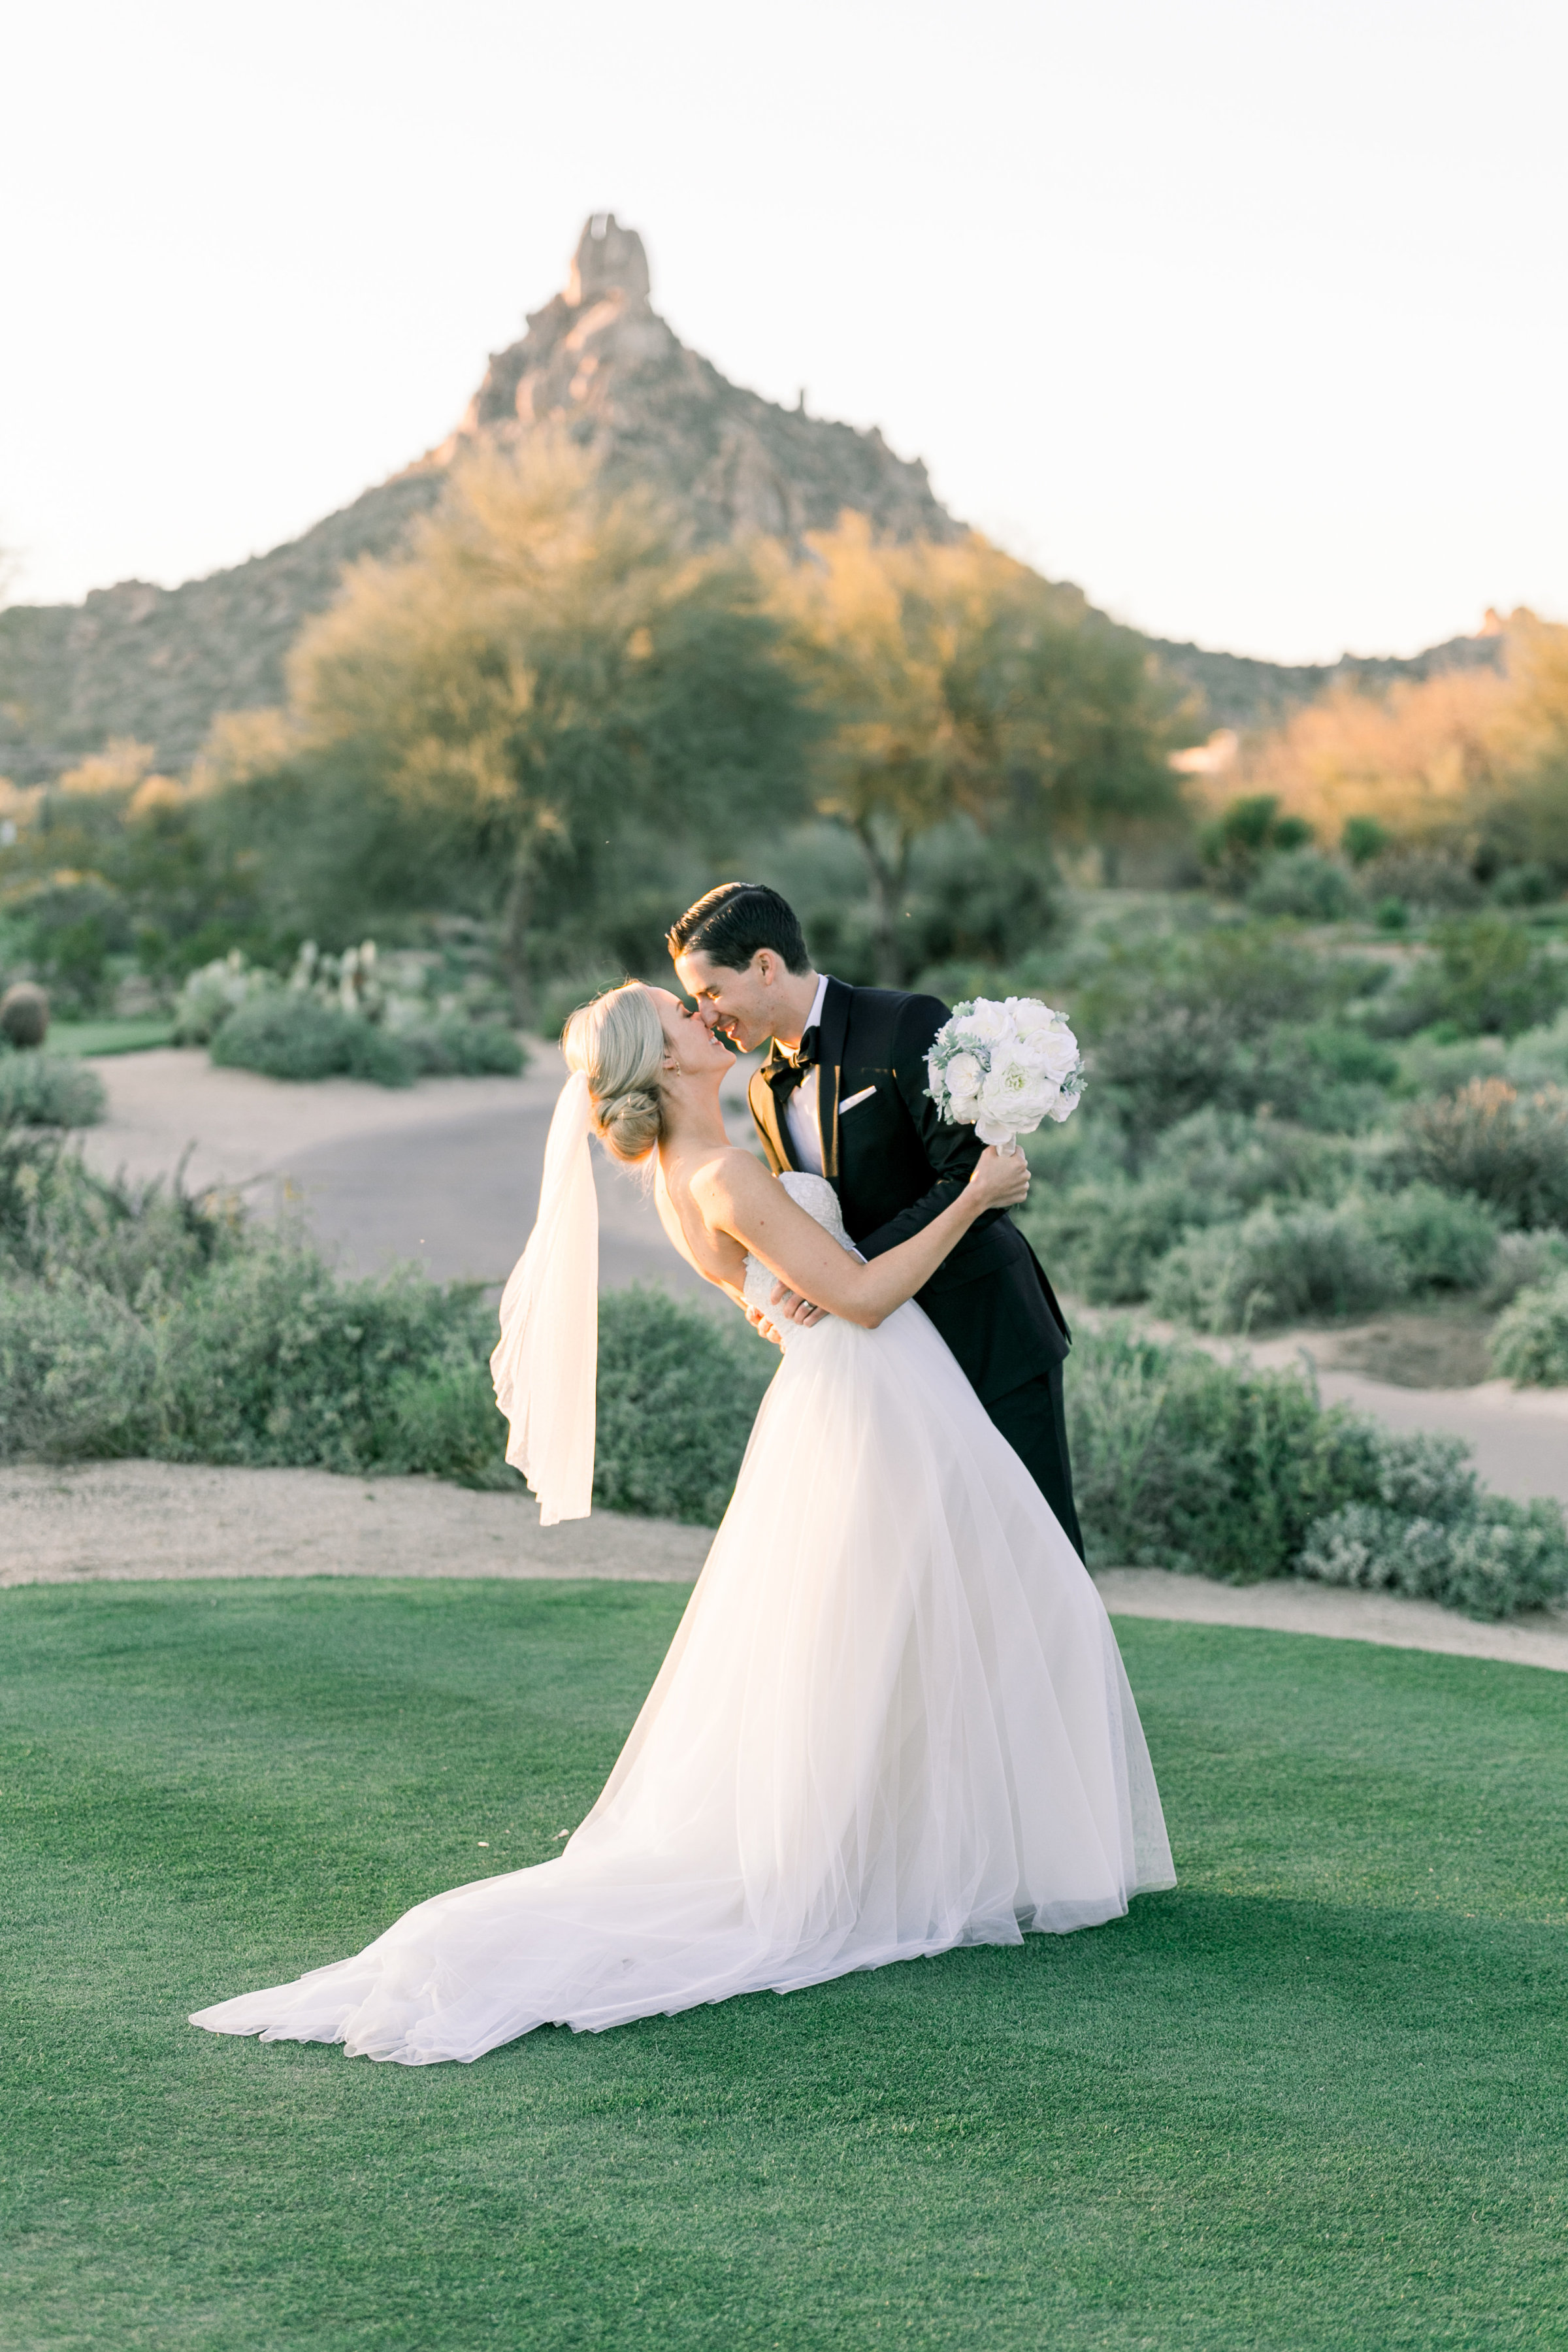 Karlie Colleen Photography - Arizona Wedding at The Troon Scottsdale Country Club - Paige & Shane -740